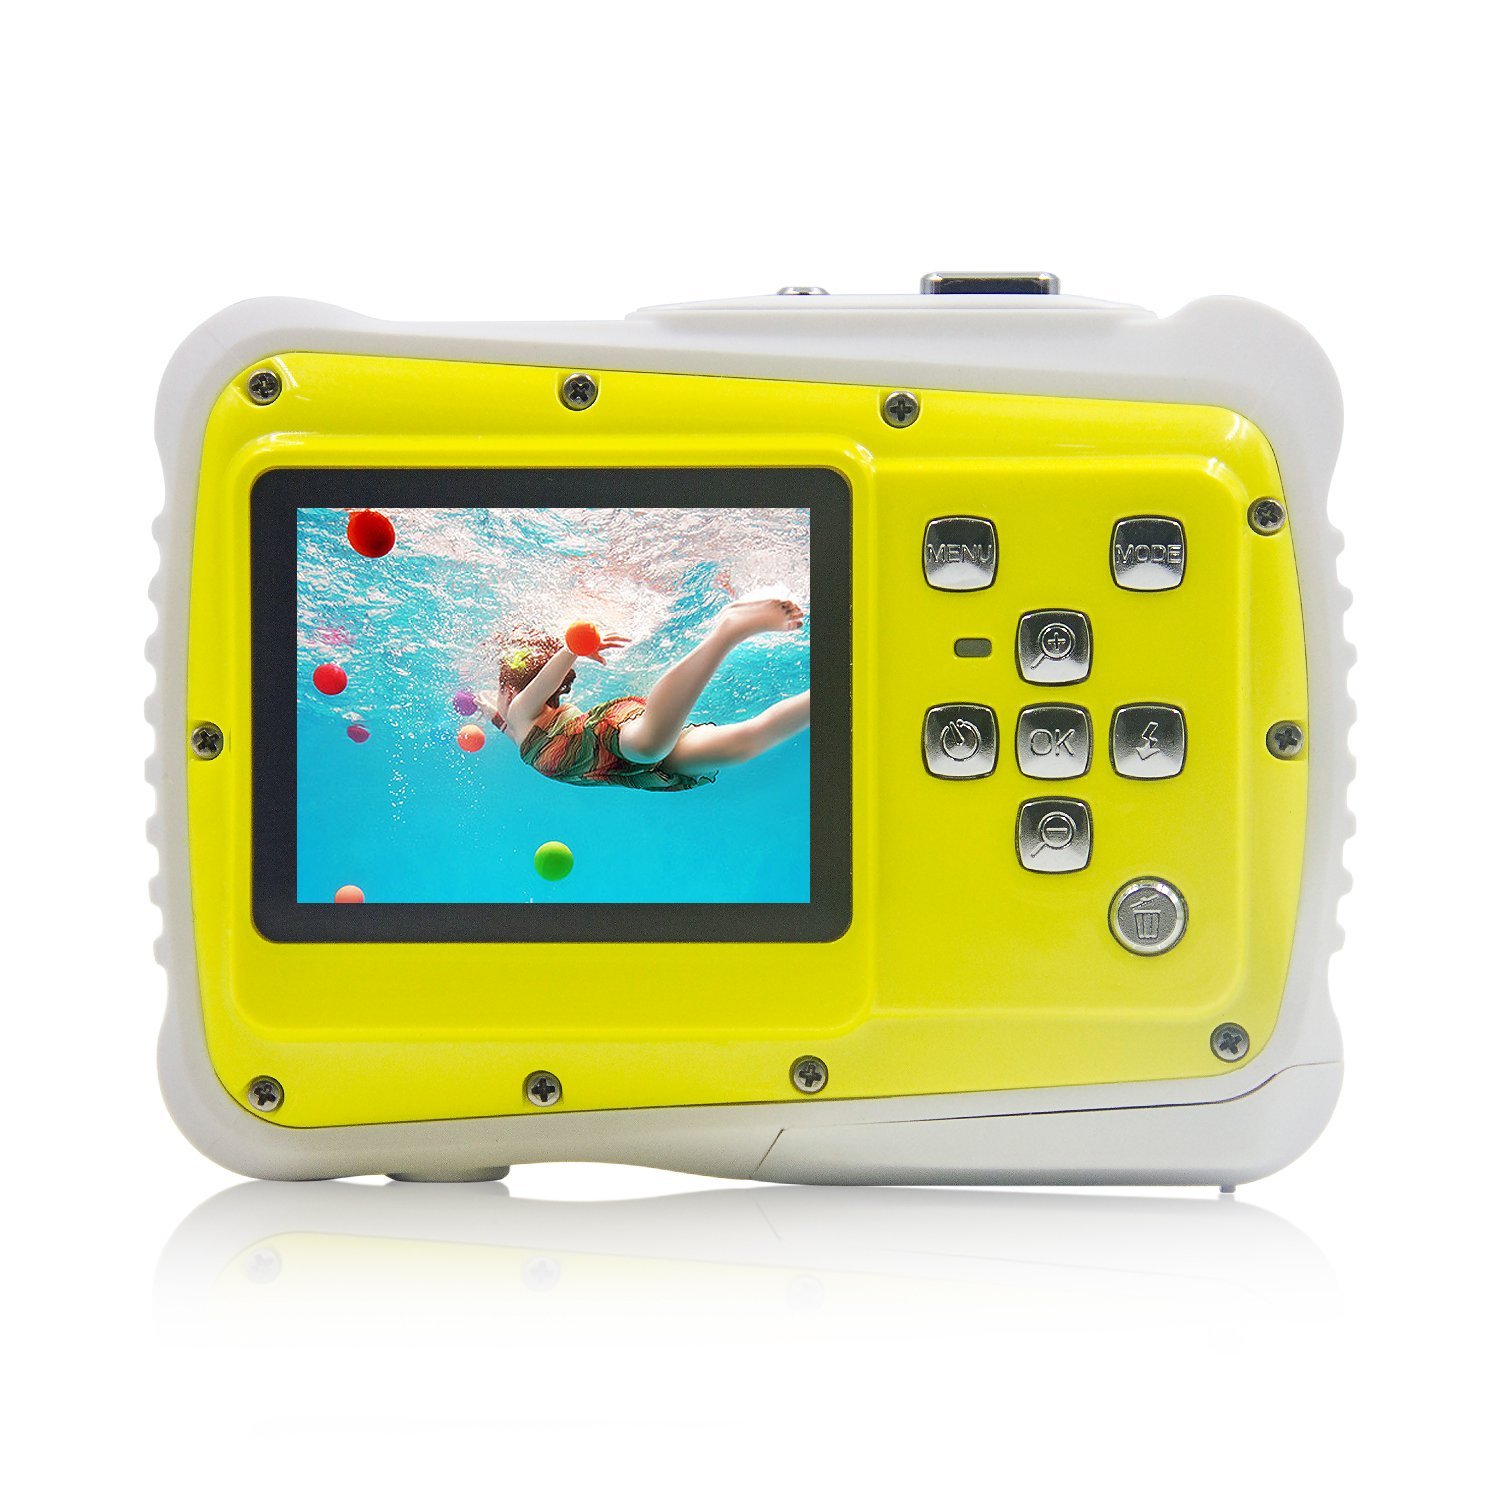 Underwater Camera Kids Digital Camera IP68 Waterproof Shatterproof Dustproof 5MP for Kids Outdoor use, Yellow,Sport Action Camera